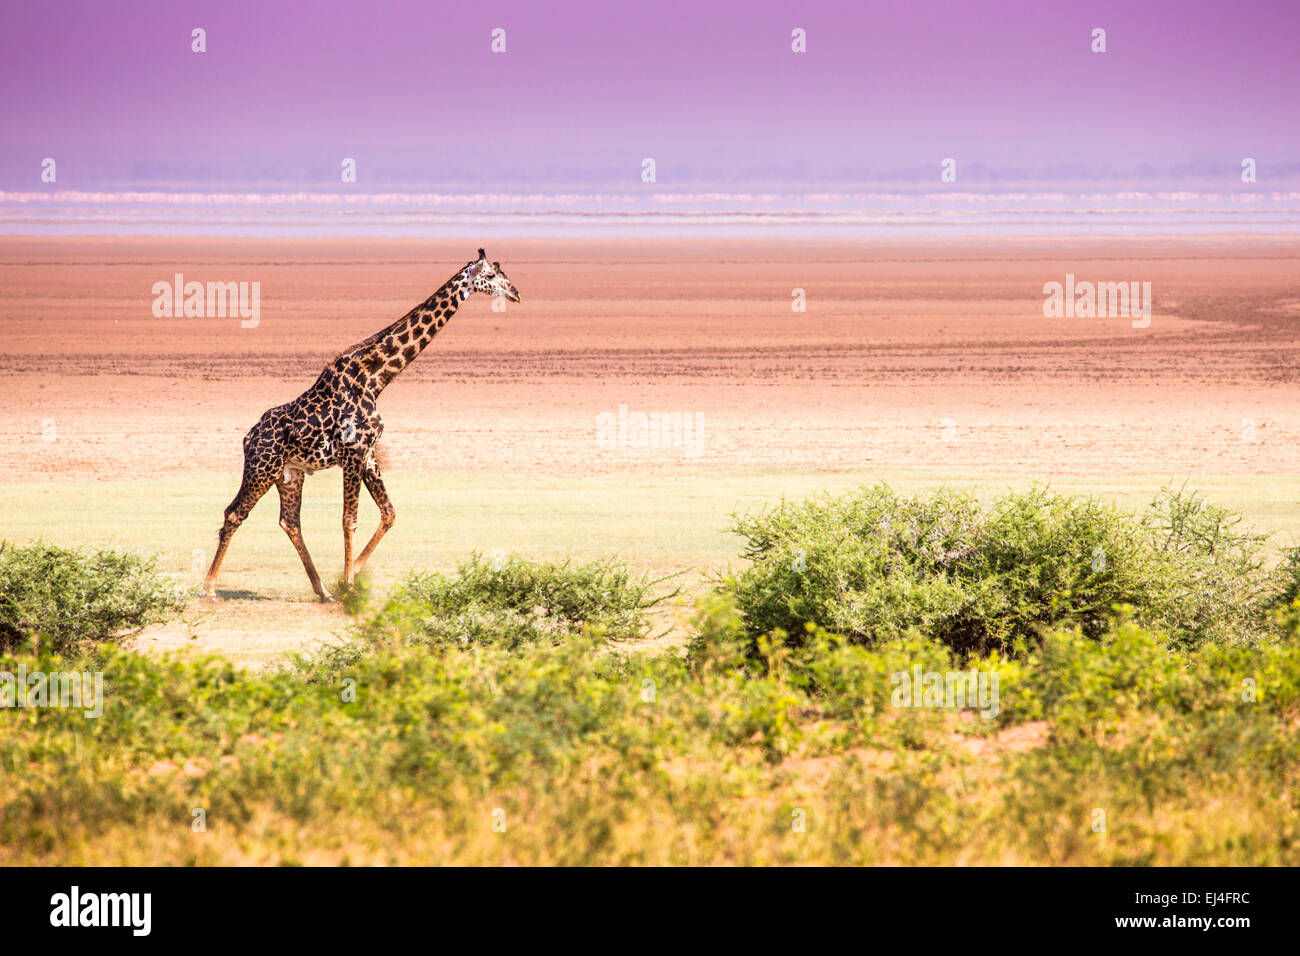 Giraffes in Lake Manyara national park, Tanzania - Stock Image